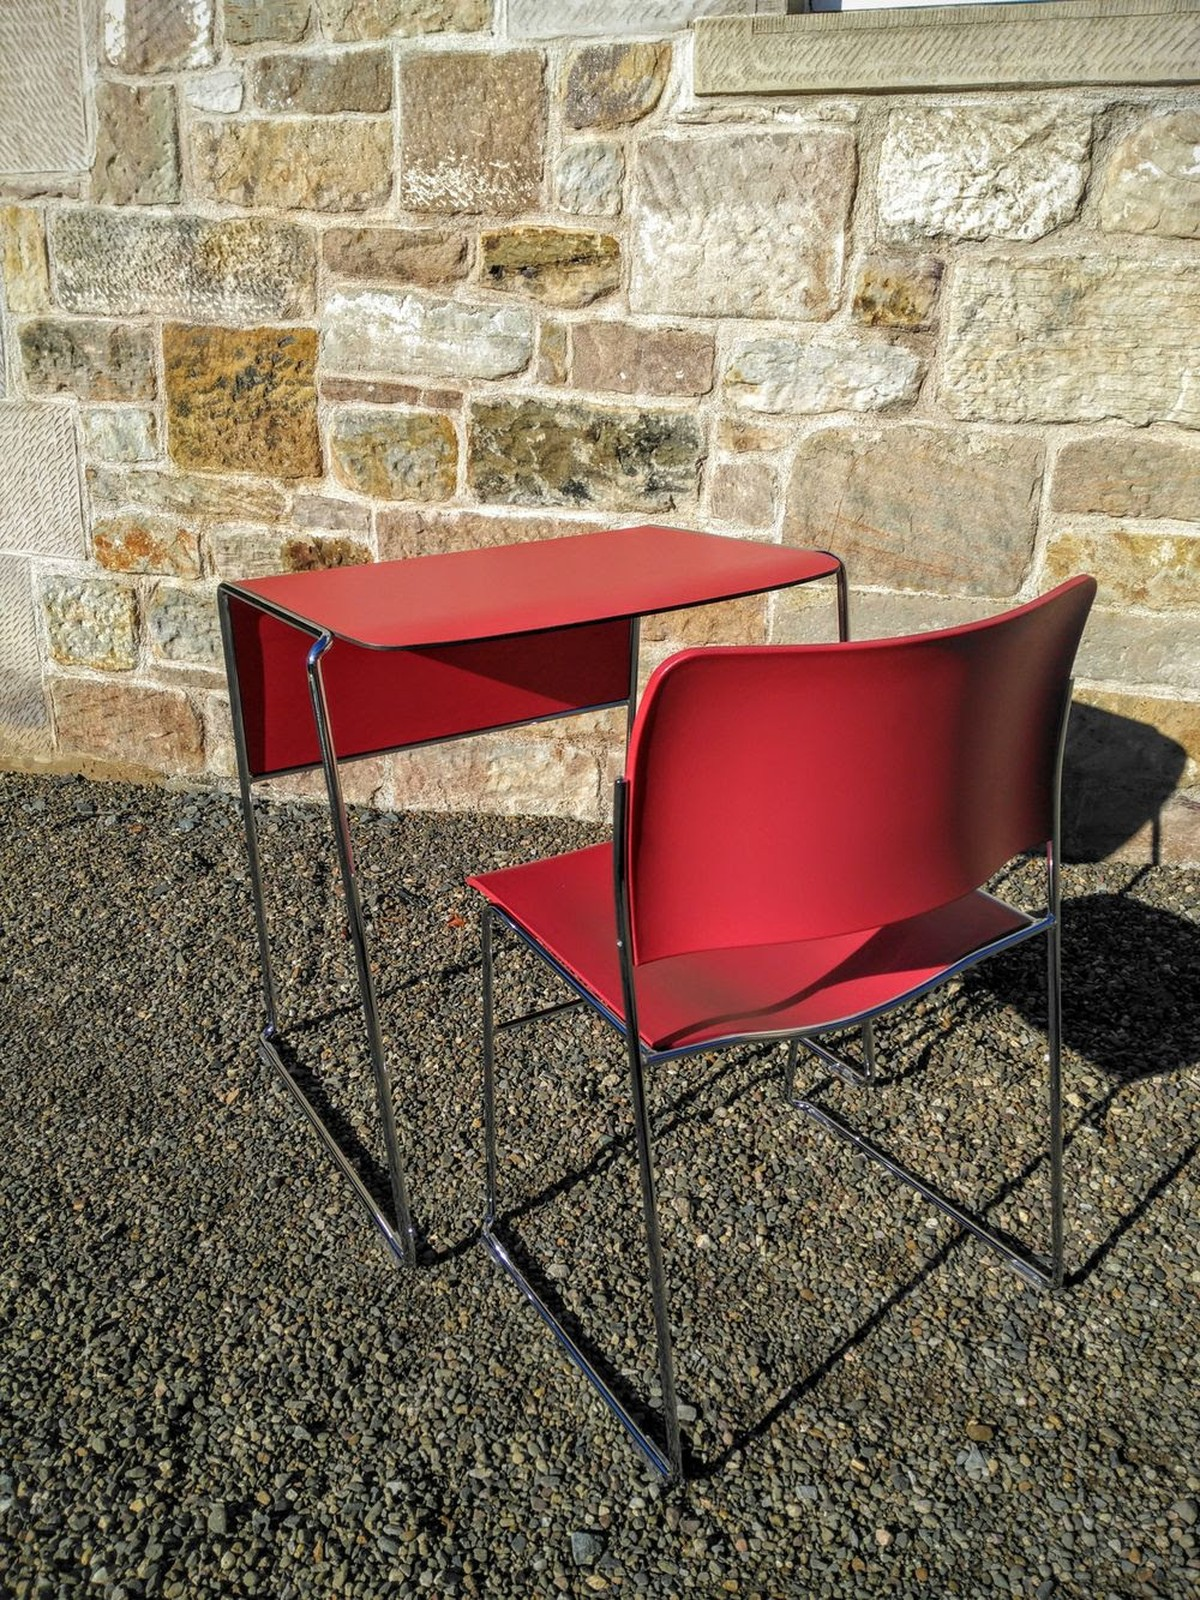 Secondhand Chairs and Tables   Retro Vintage or Antique Furniture   Howe  40 4 Chair and Tutor Table   Edinburgh. Secondhand Chairs and Tables   Retro Vintage or Antique Furniture